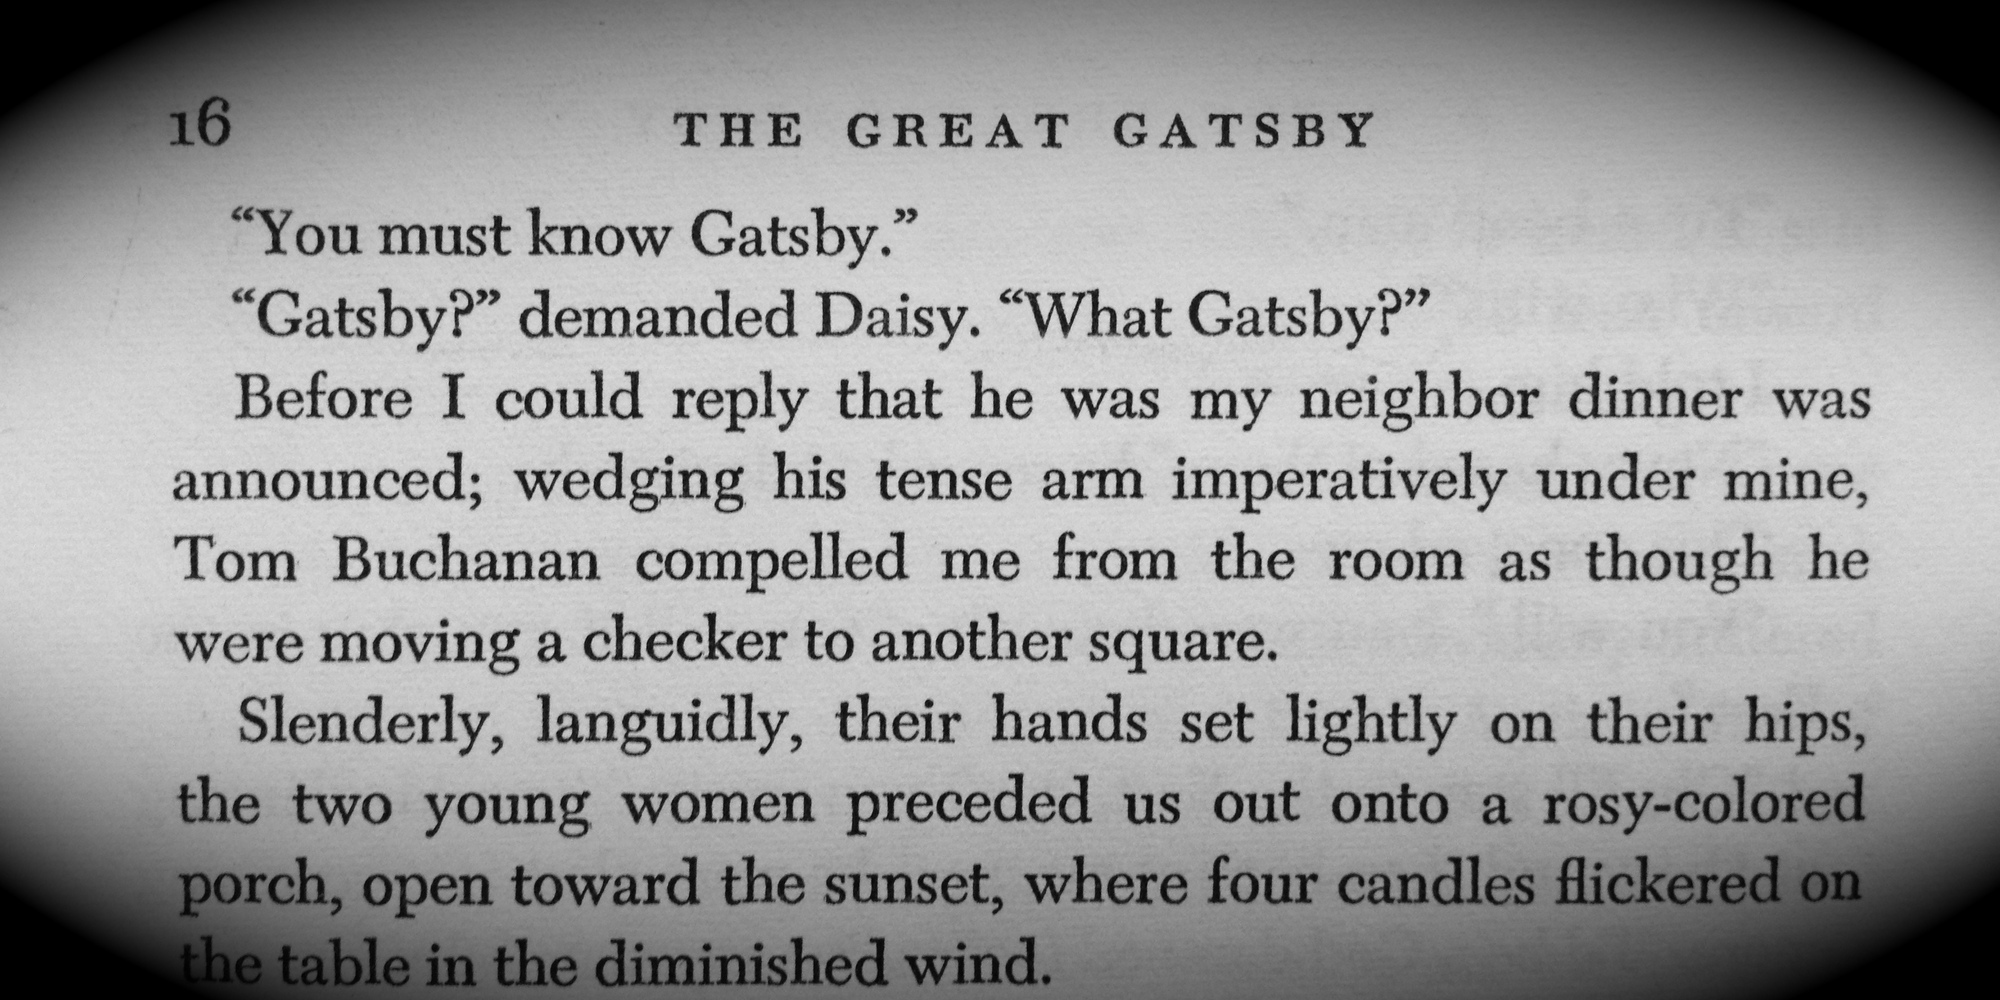 /images/upload/blog/1500/1500_great-gatsby-movie-quotes.jpg